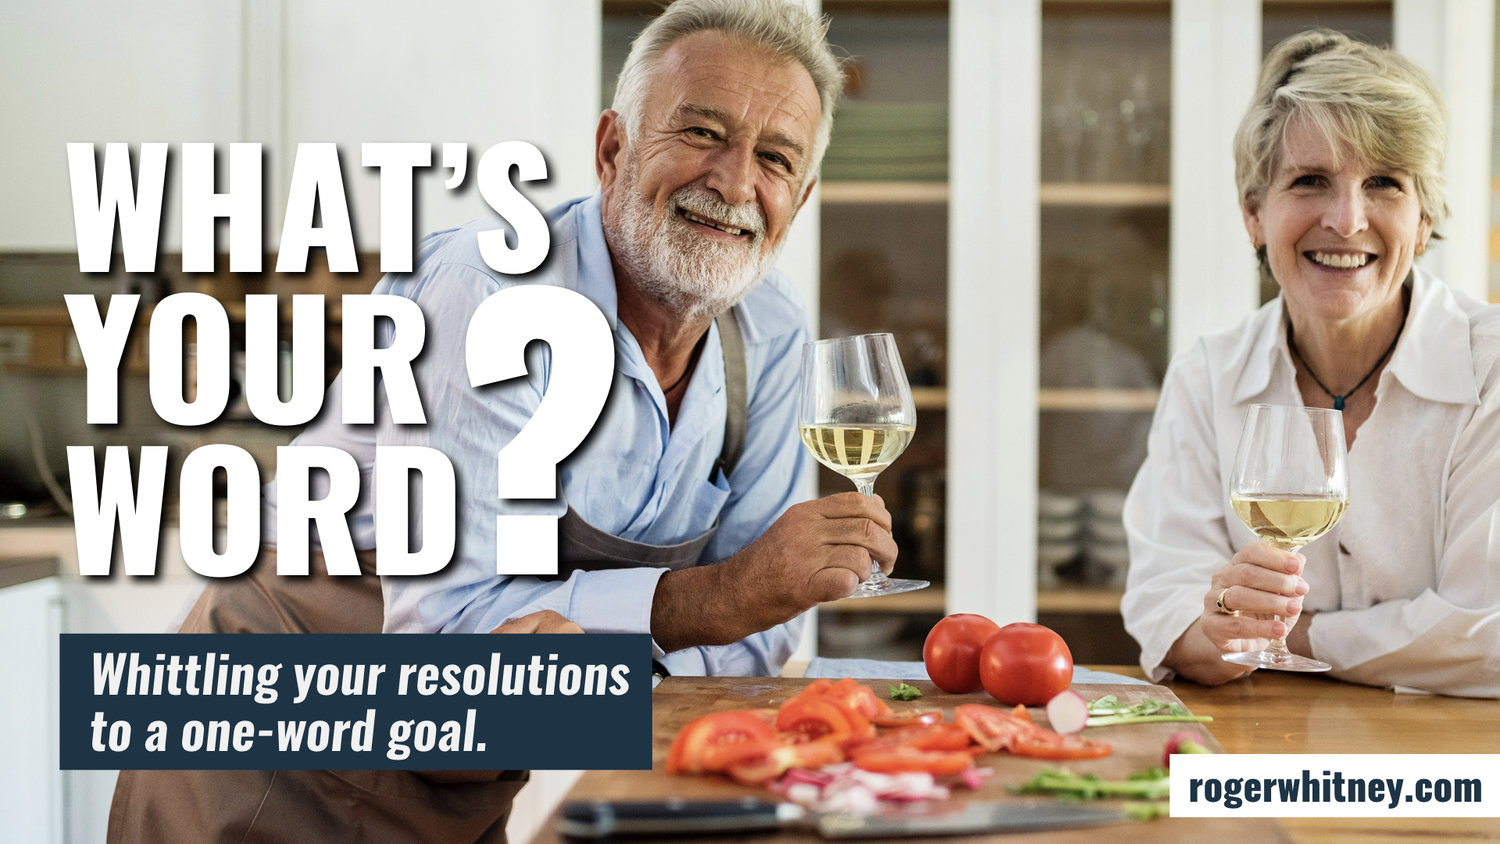 252 - What's Your Word? Whittling Your Resolutions to a One